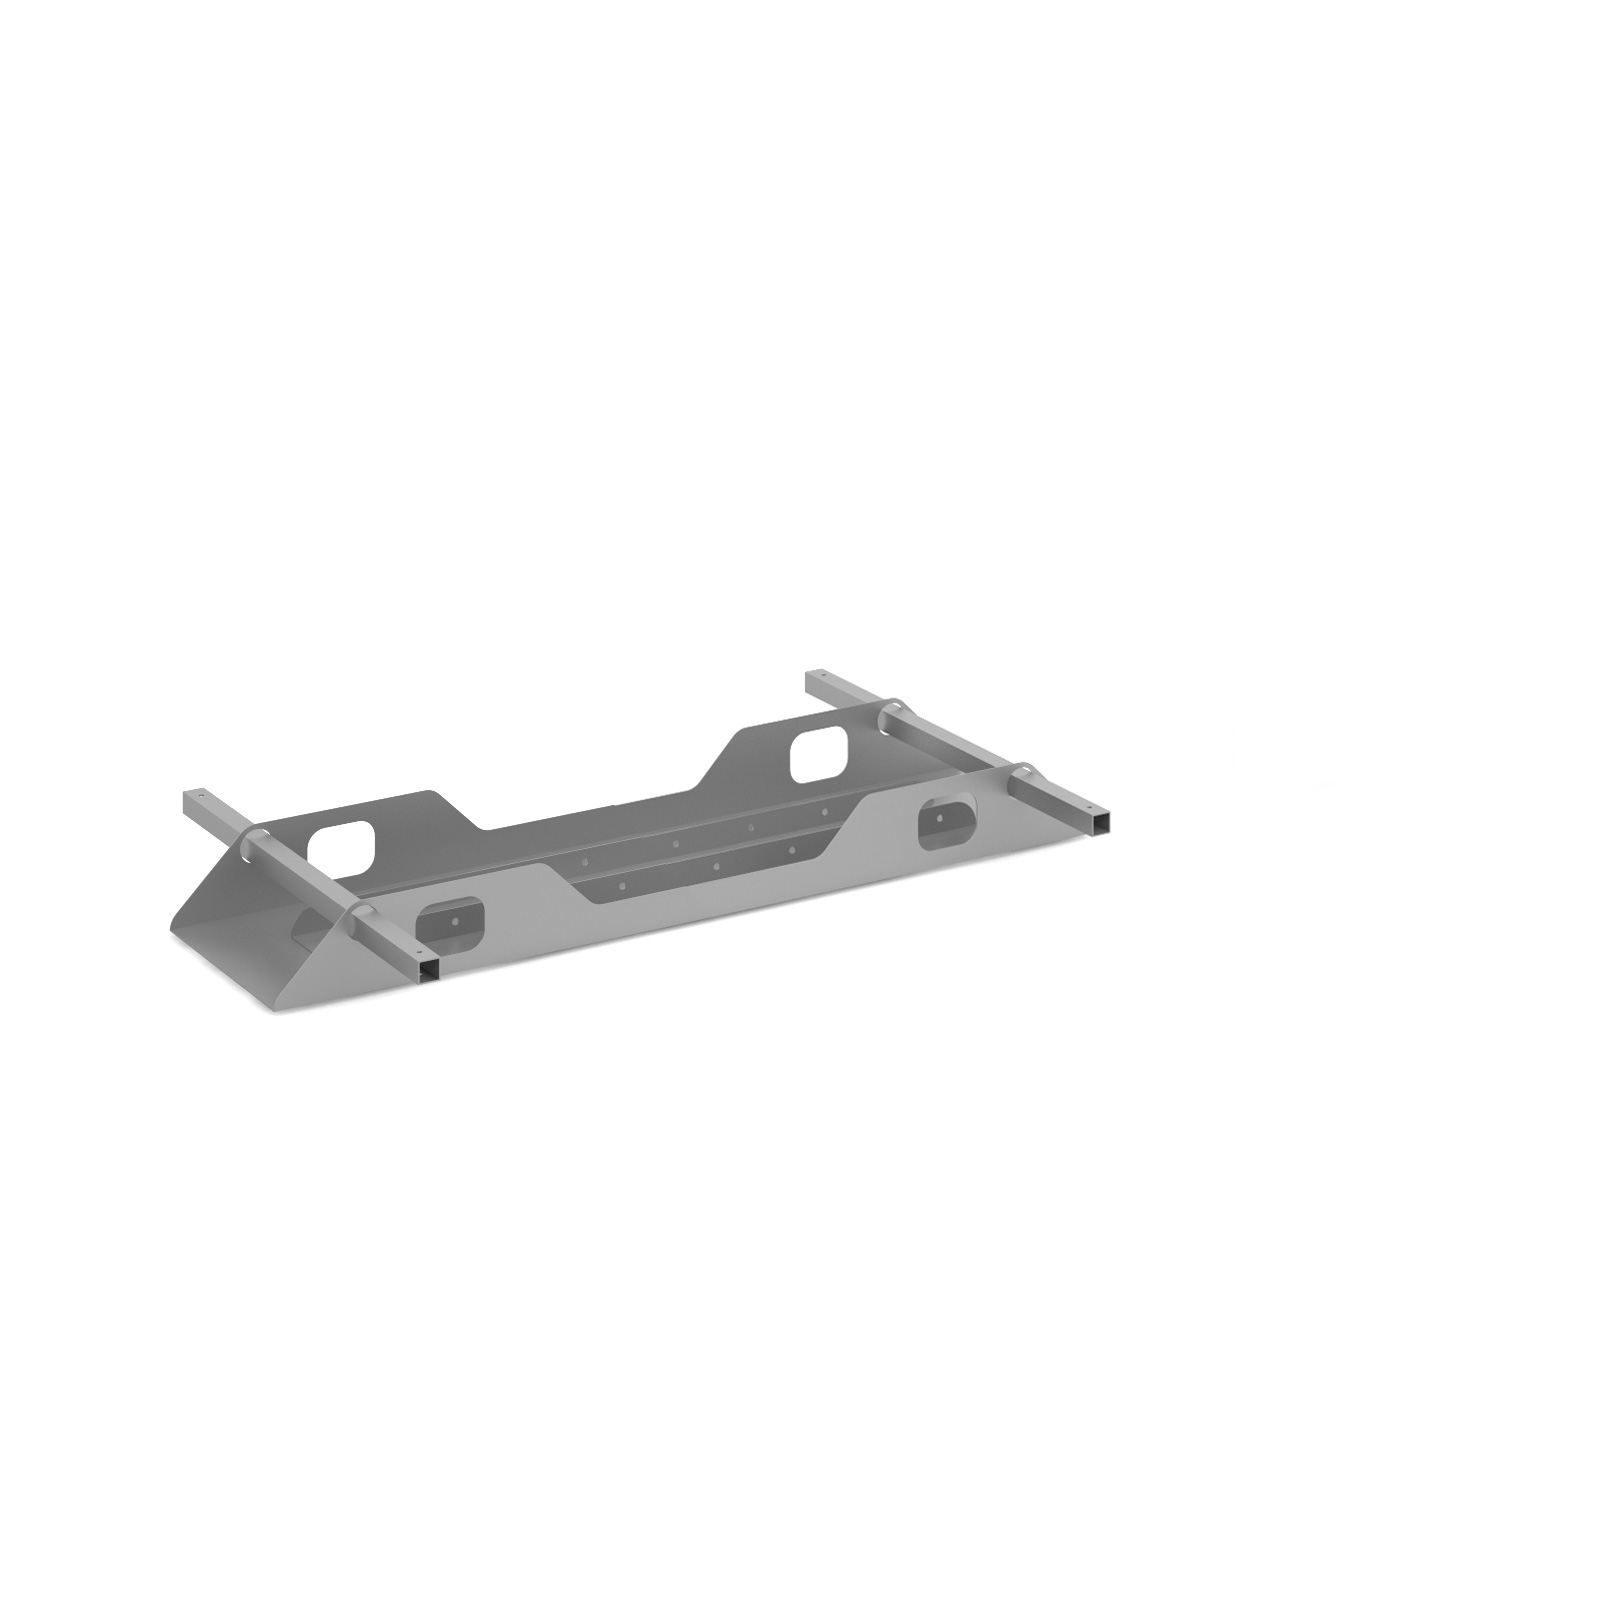 Connex Double Cable Tray 1200mm in silver